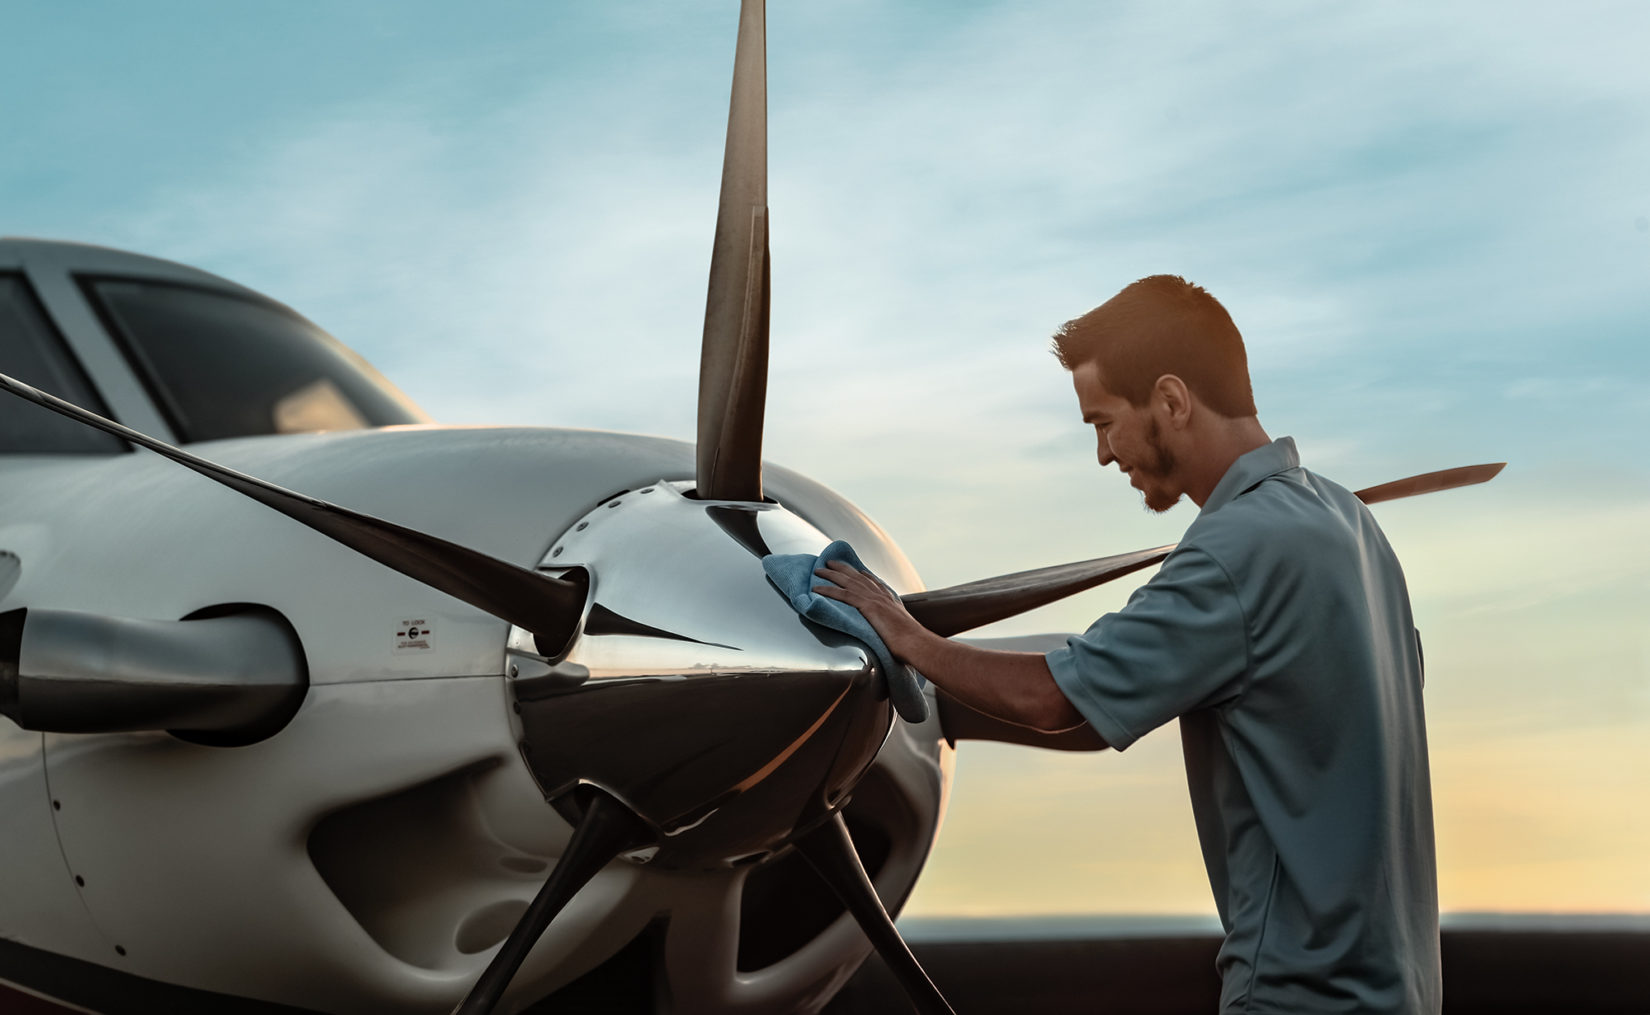 Man wiping the nose of a Piper Aircraft